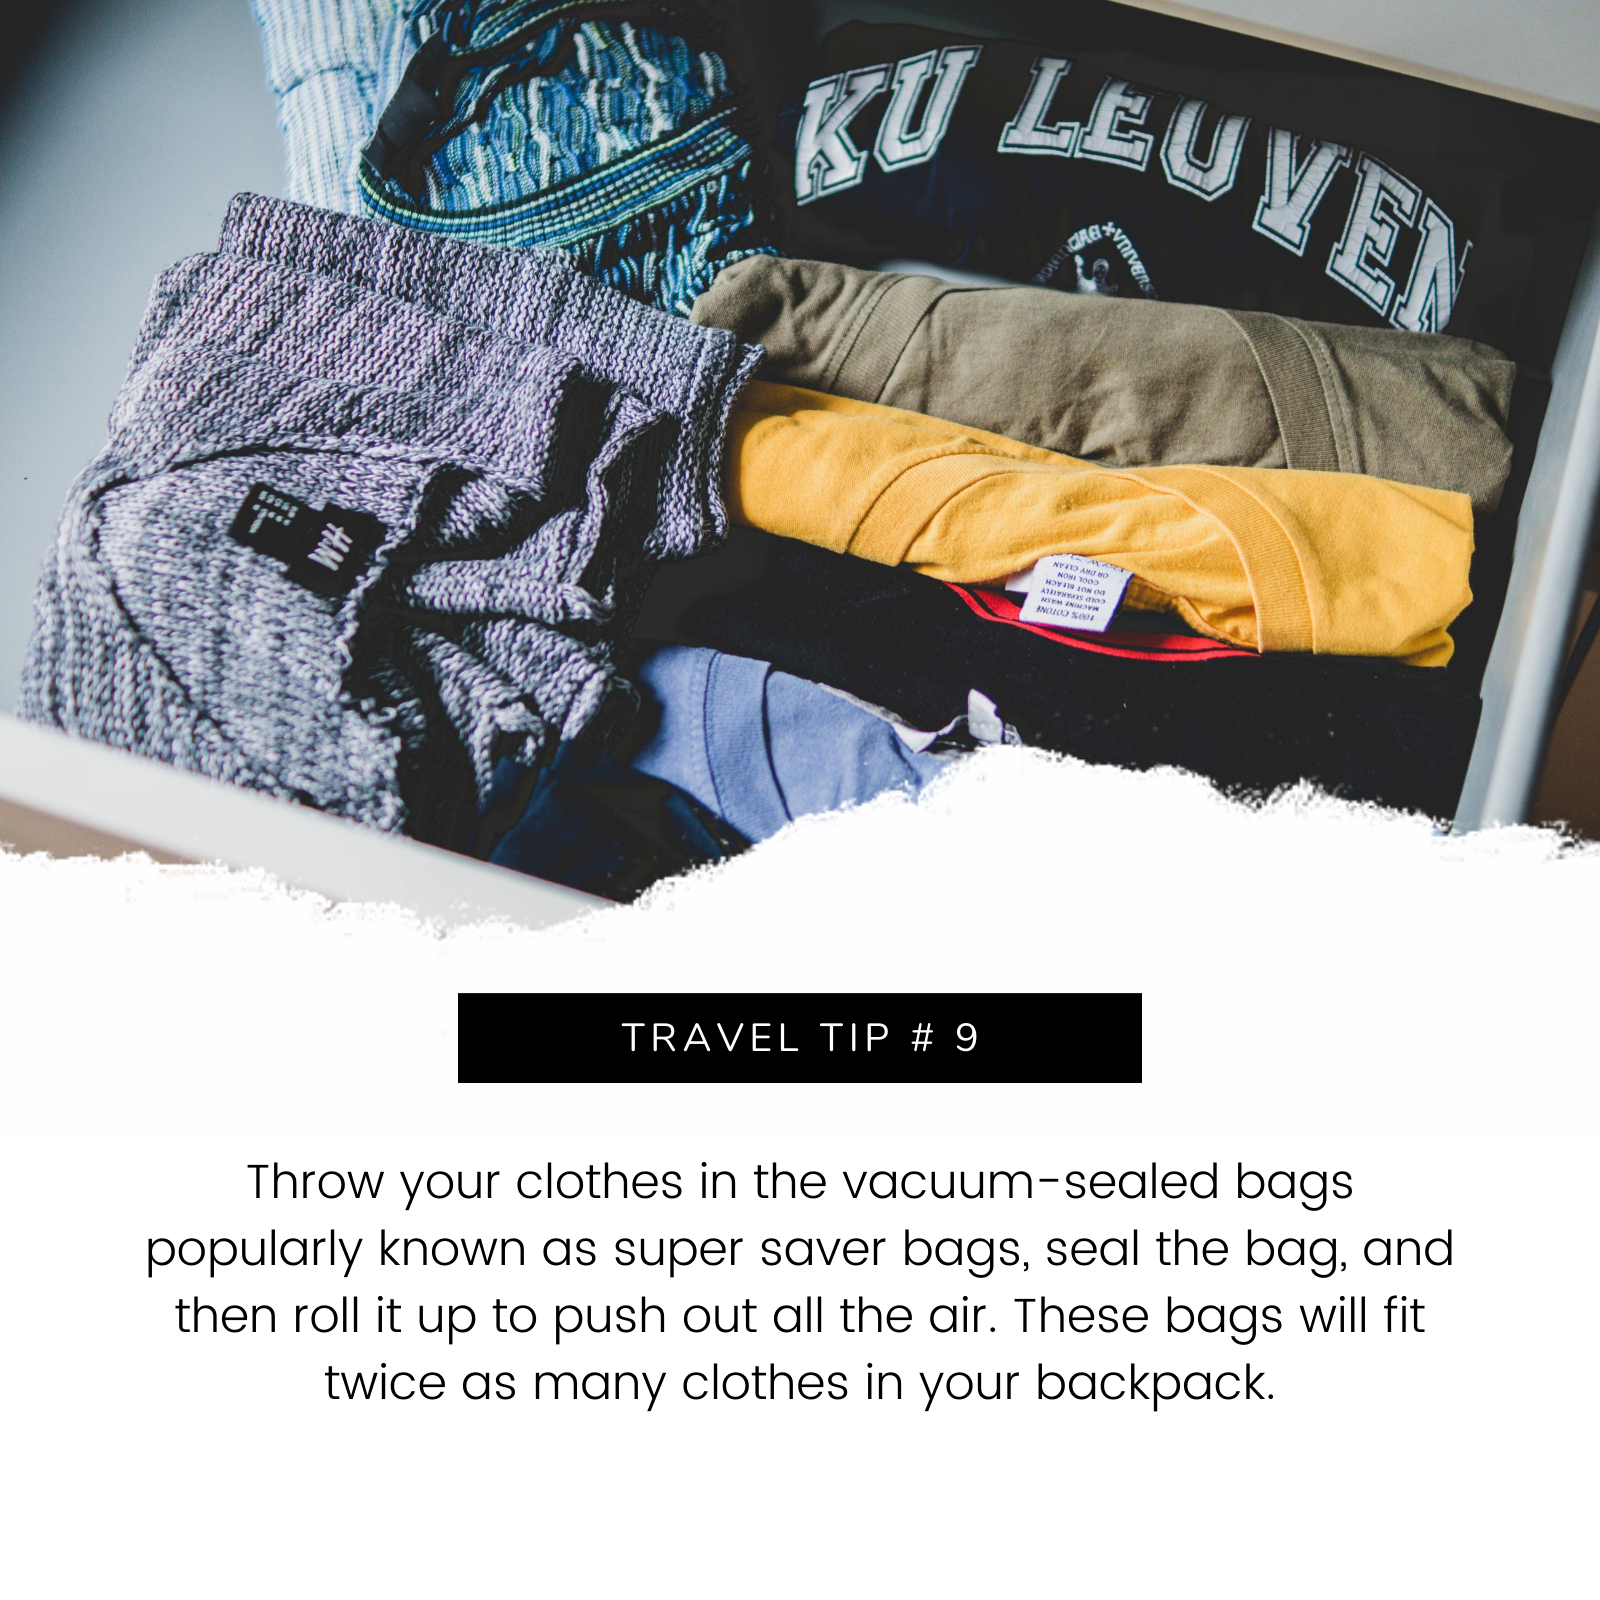 Travel Tip Tuesday! Take a trip. This month, even this week, even tomorrow! We've got everything all set up for you. With a wide array of options to choose from, we can build your dream vacation! #traveltips #lunch #lunchideas #instafood #snacks #dinner #travelonabudget #budgettraveler #travelblogger #travelskills #ilovetravel #mybudgettravel #budgetlife #dreamtrips #eurotrip#besttraveltips#dreamvacations#travelagent#traveladvisor#luxurytravel#advisor